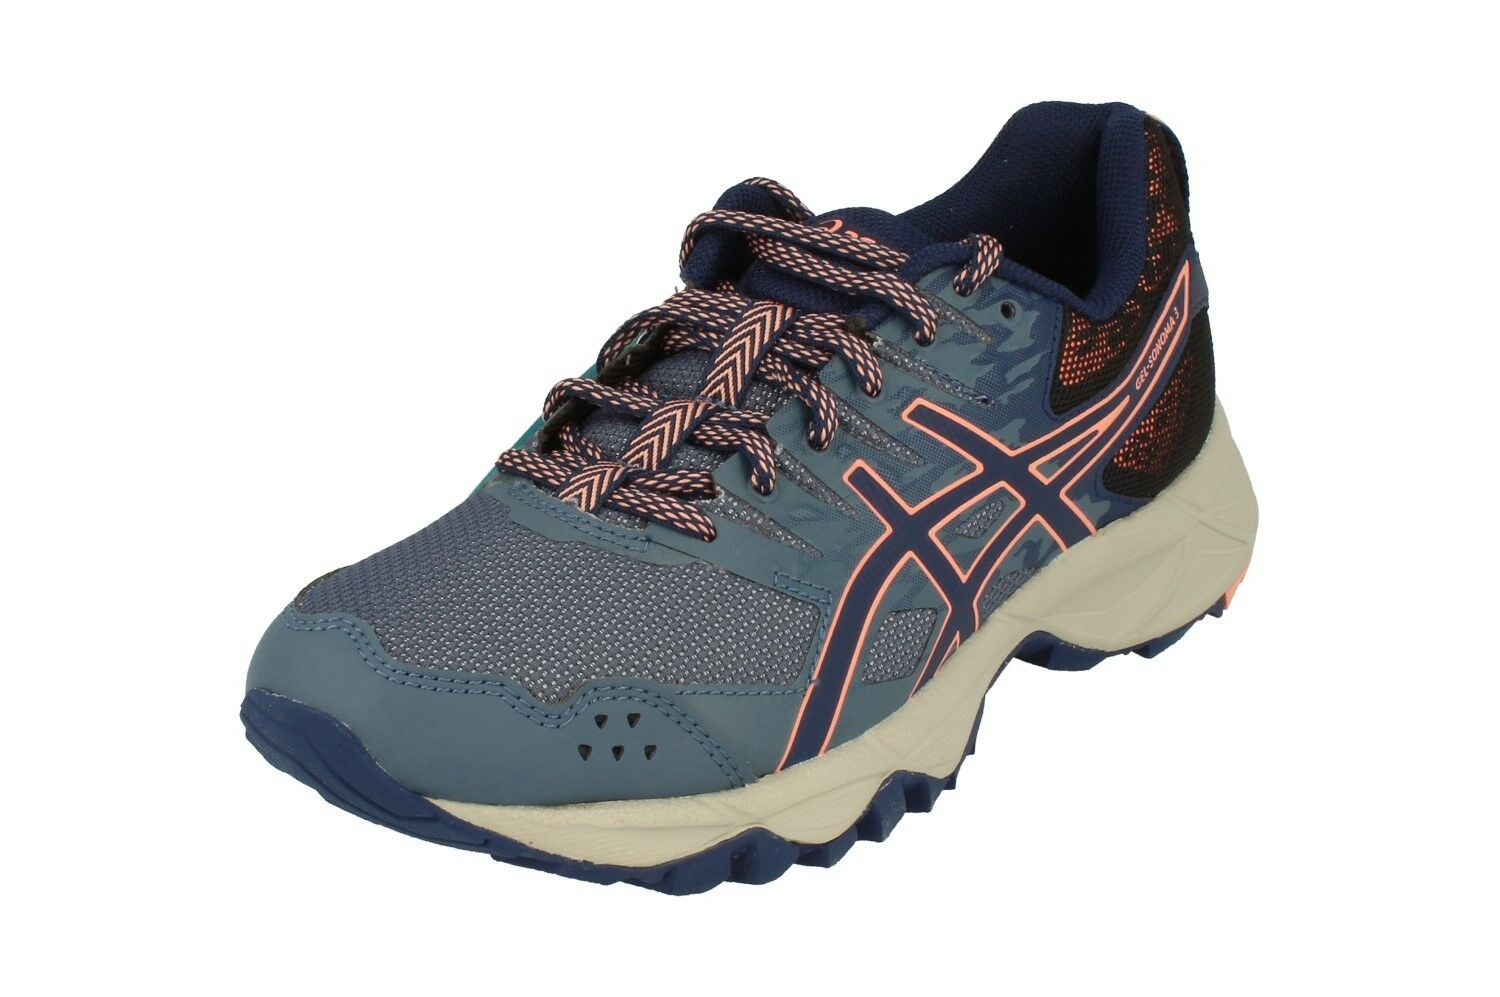 Asics Gel-Sonoma 3 Womens Running Trainers T774N Sneakers shoes 5649